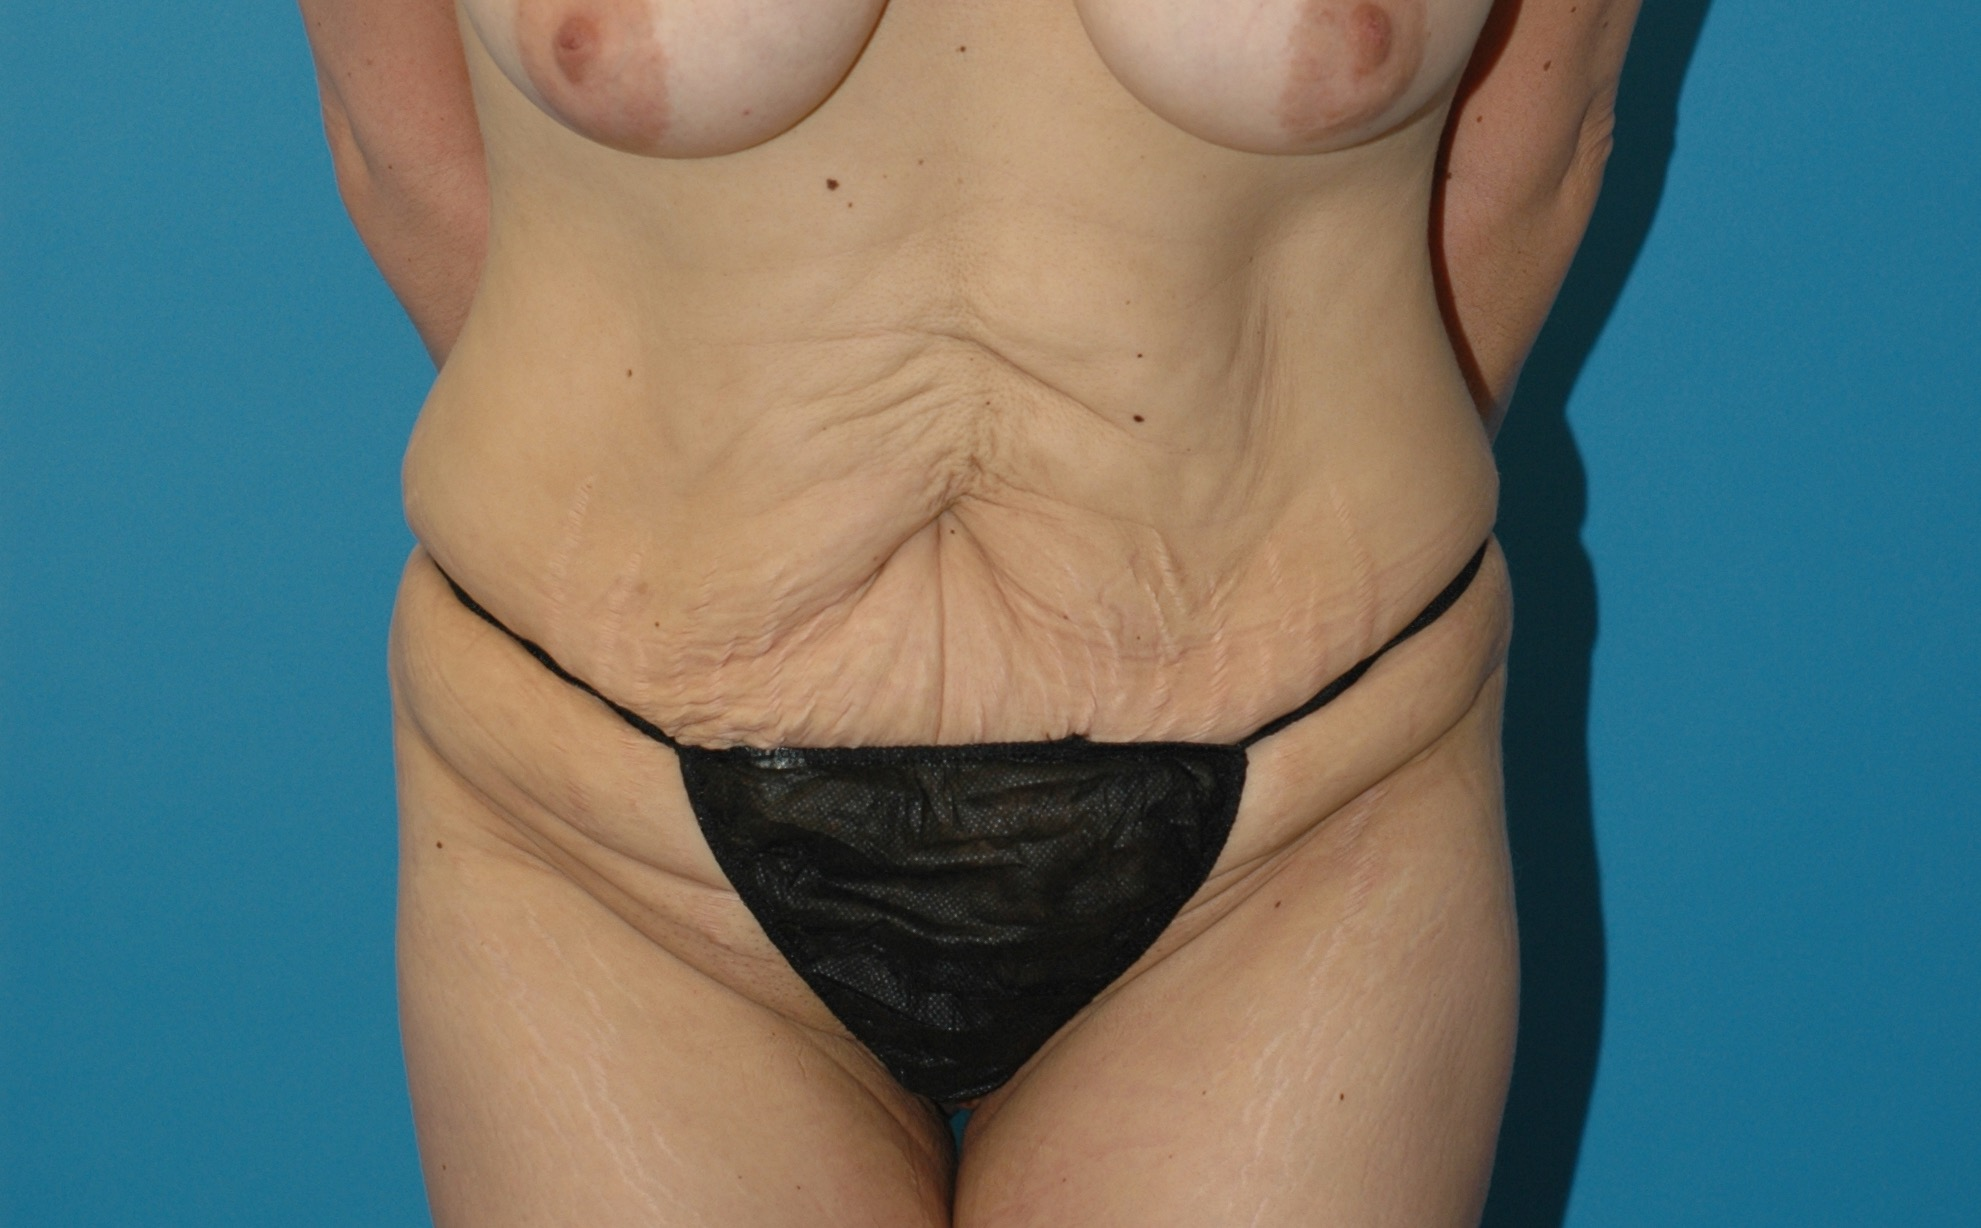 When Can I Resume Having Sex After Tummy Tuck